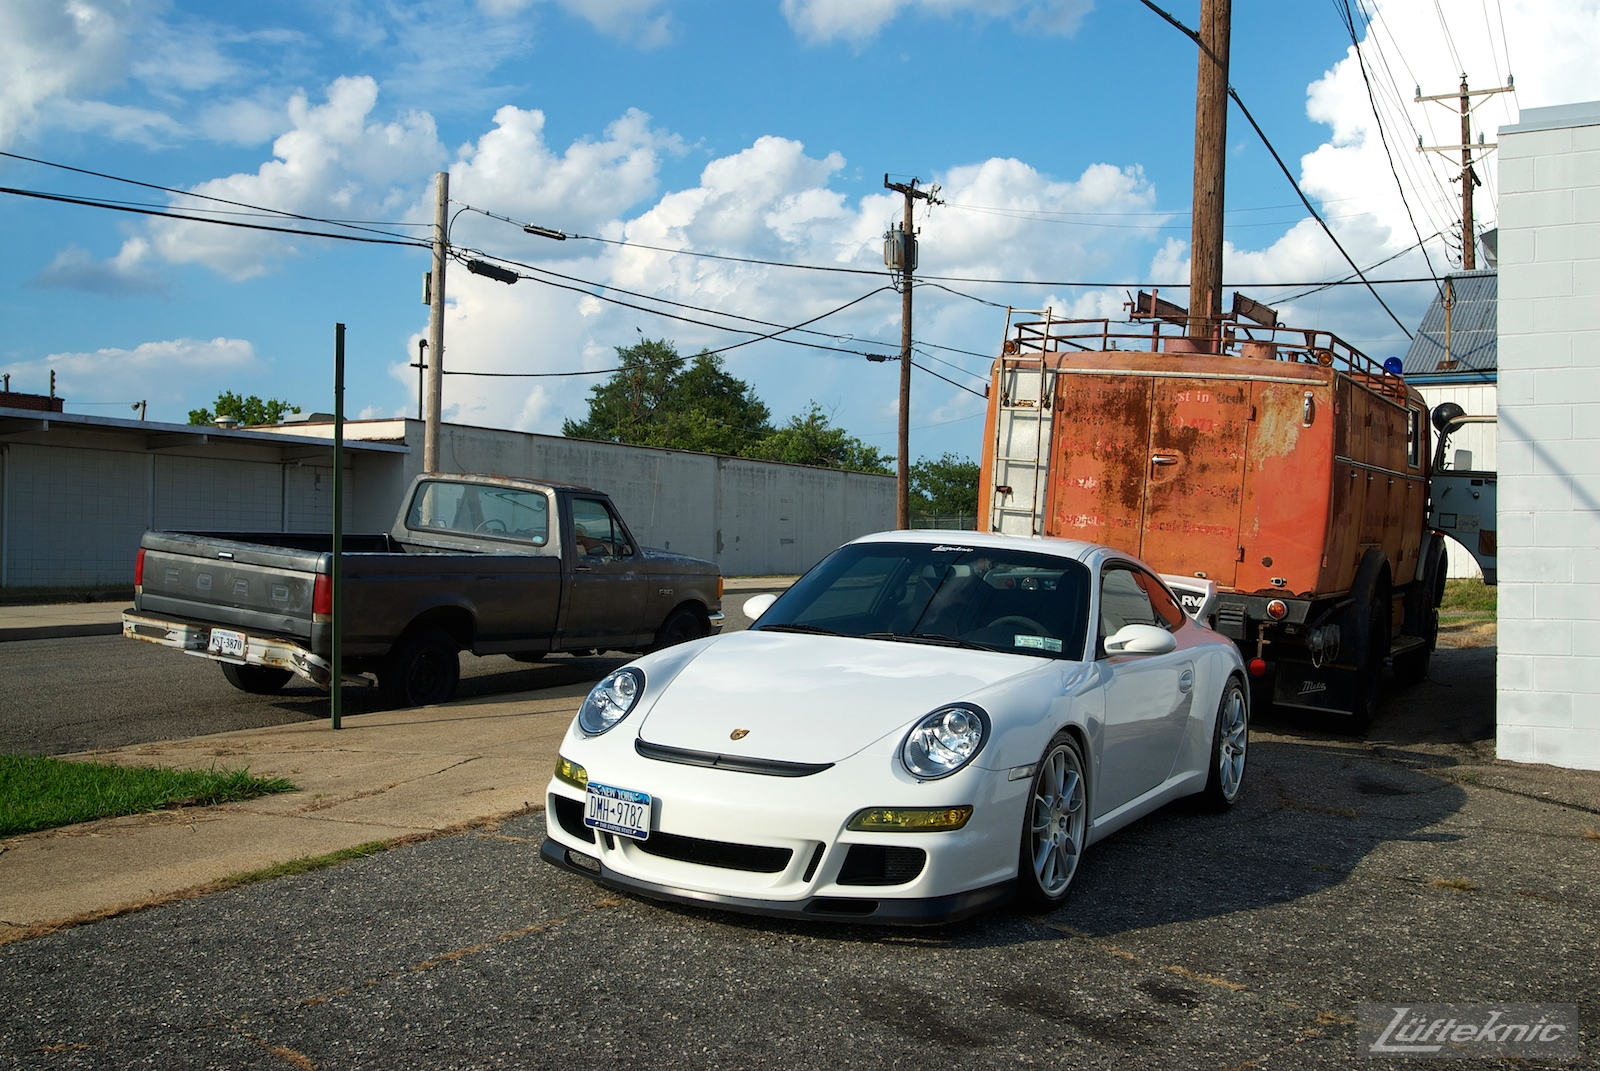 A white Porsche Gt3 poses with the Lufteknic fire truck in the parking lot, with an Ford in the background.